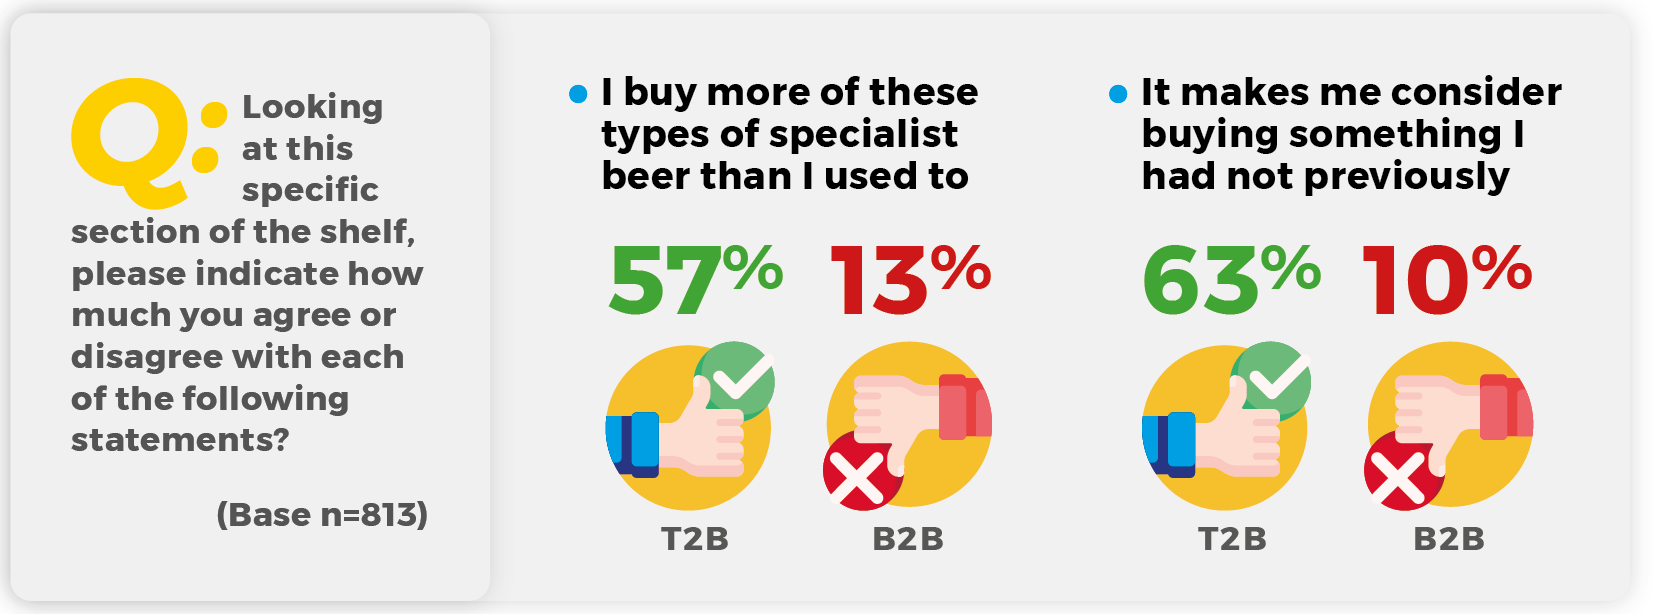 Special beer poll infographic results